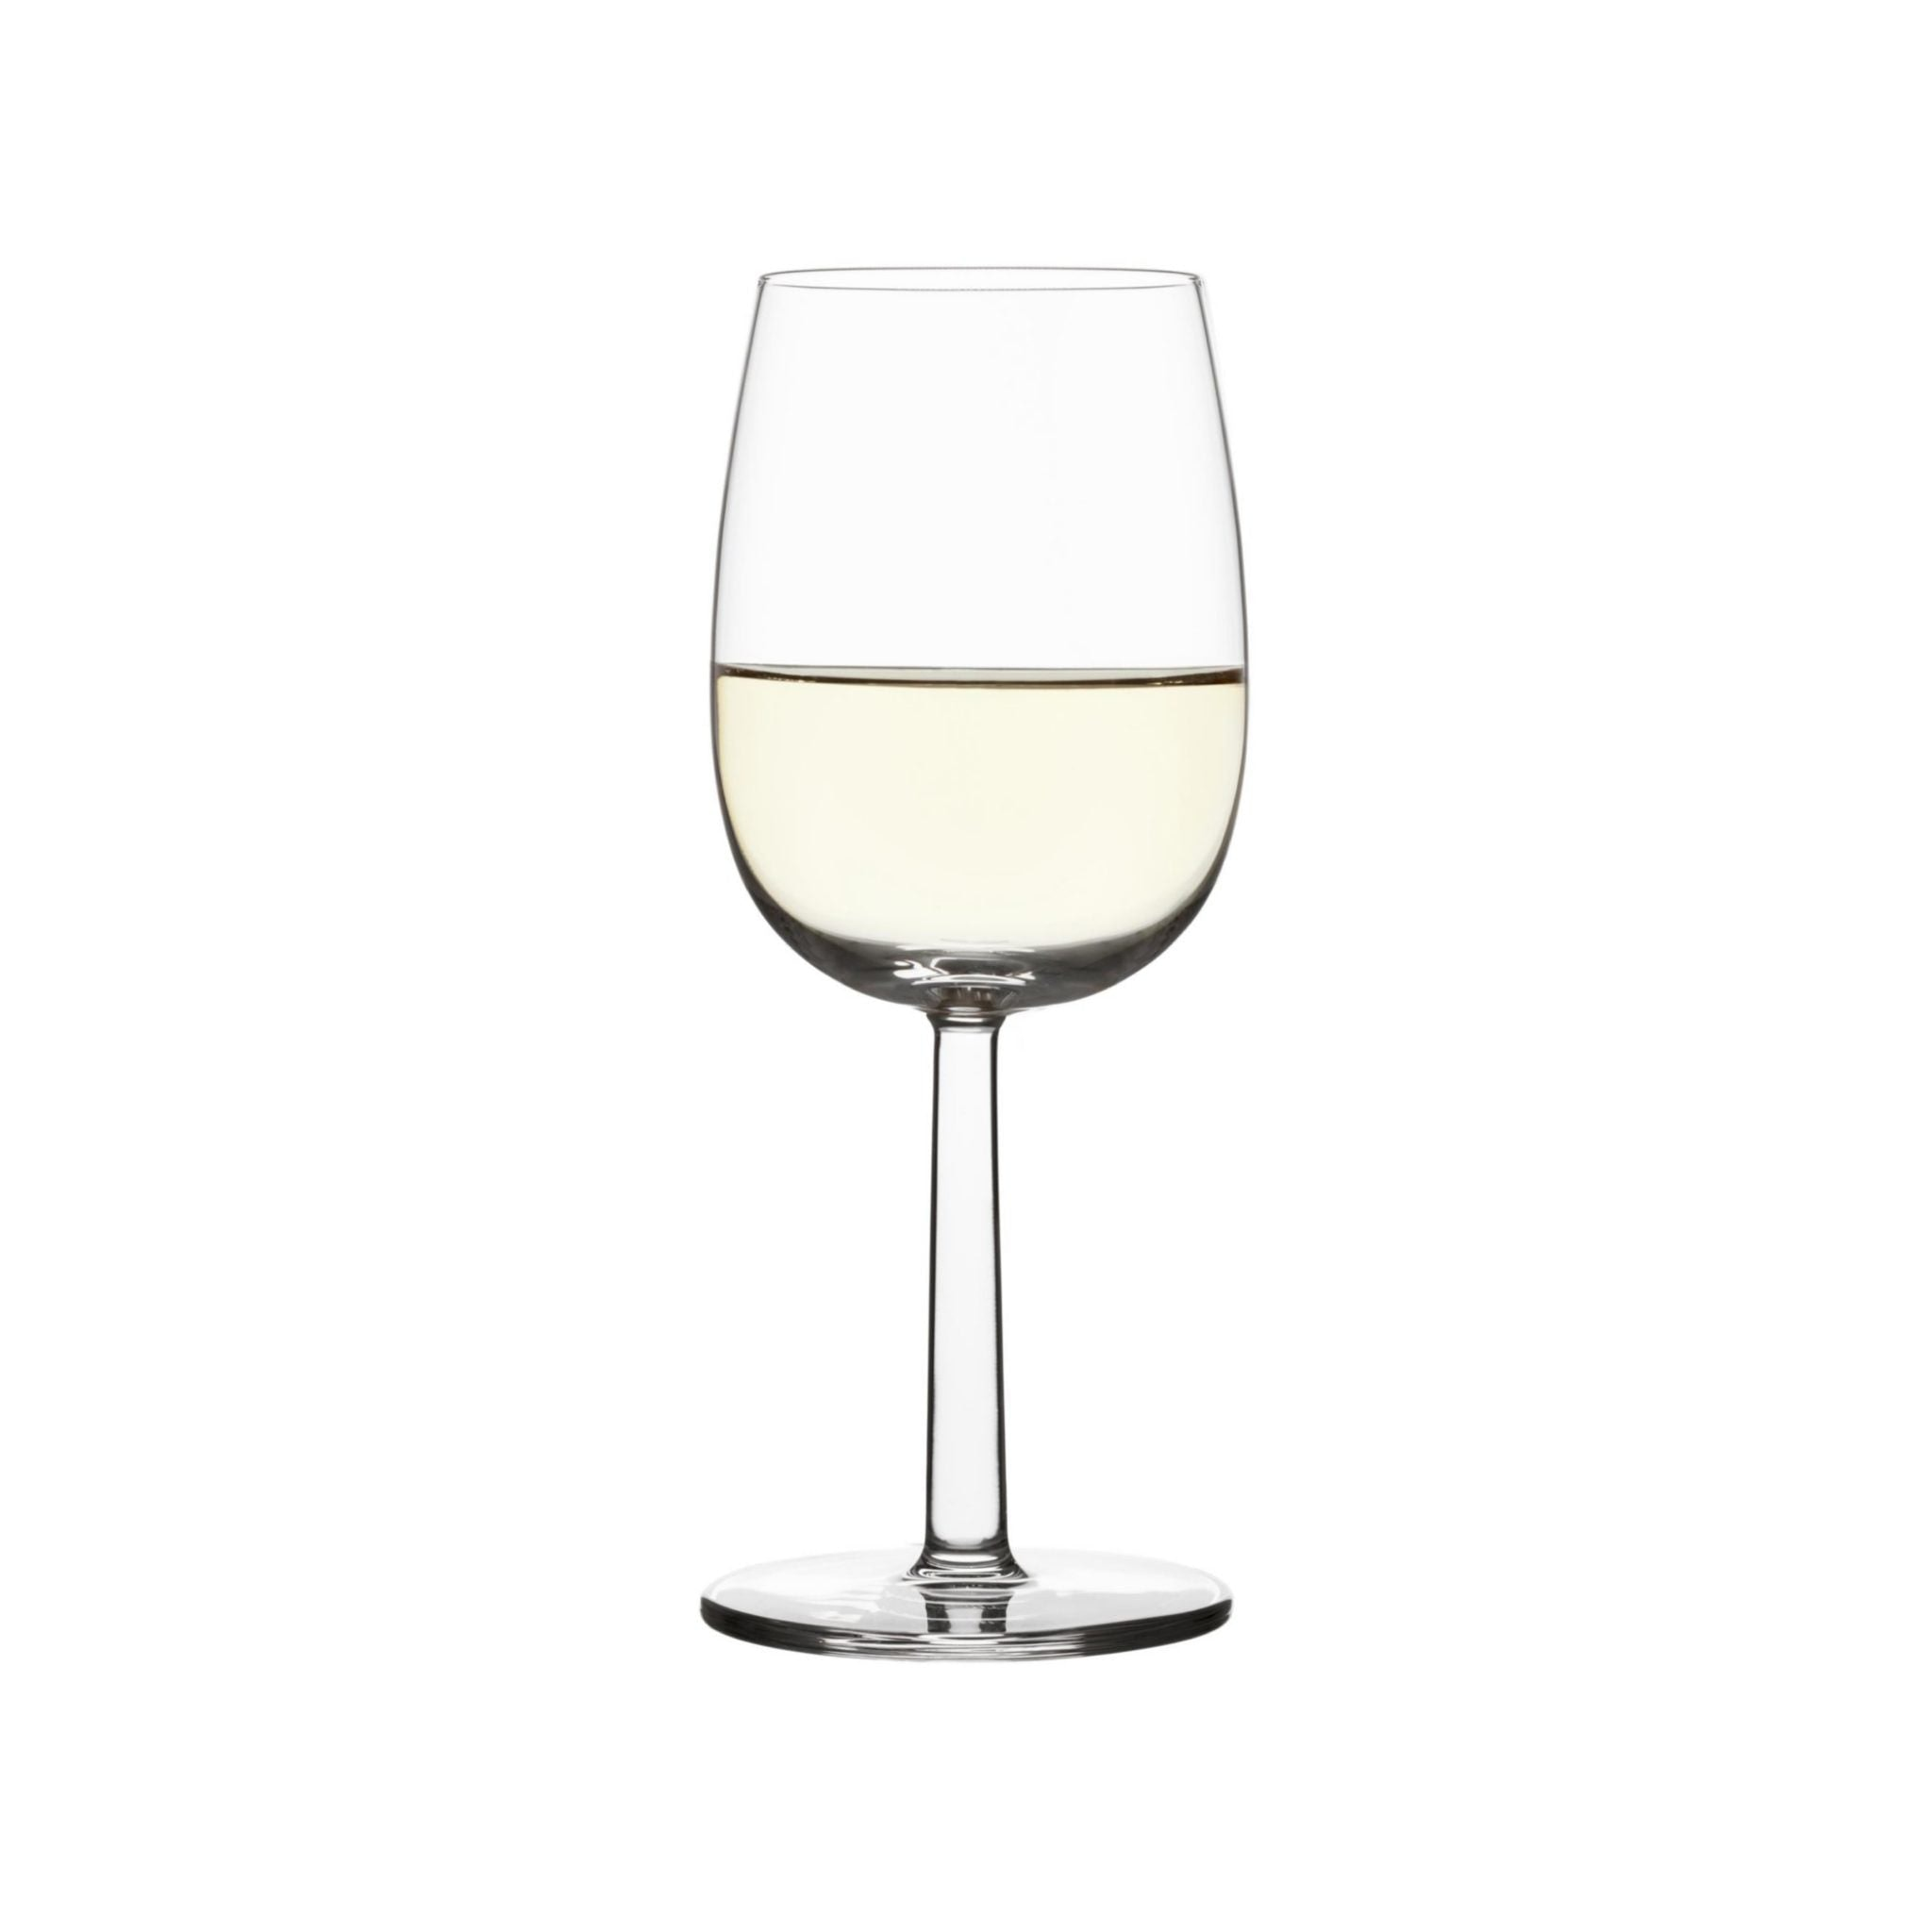 Raami White Wine Glass by Iittala